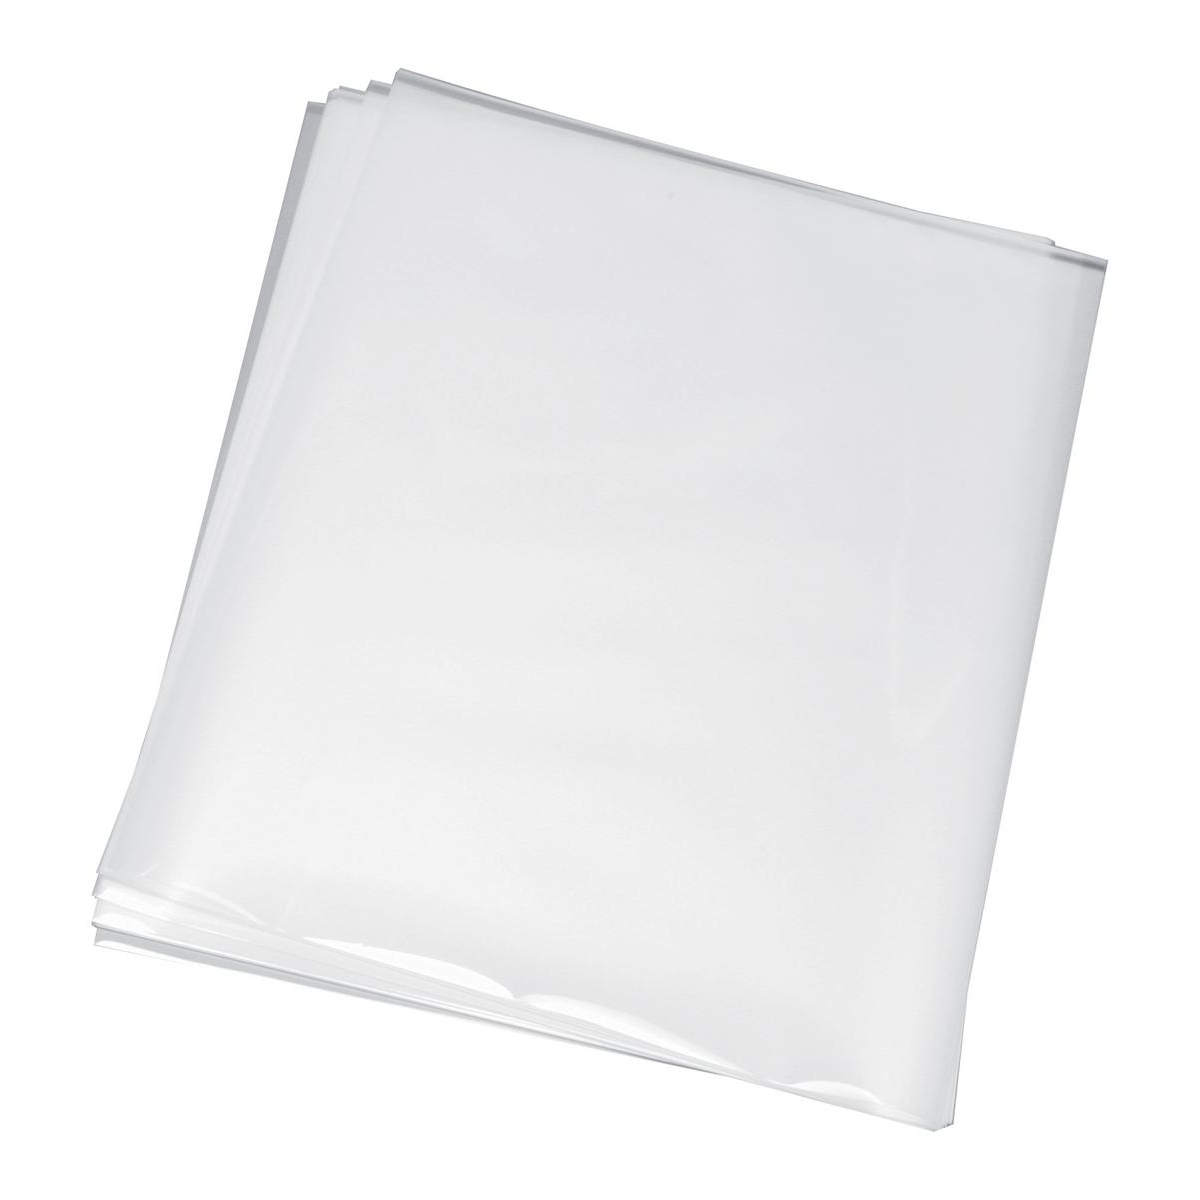 Laminating Film & Pockets GBC Laminating Pouches 250 Micron for A4 Ref 3200723 Pack 100